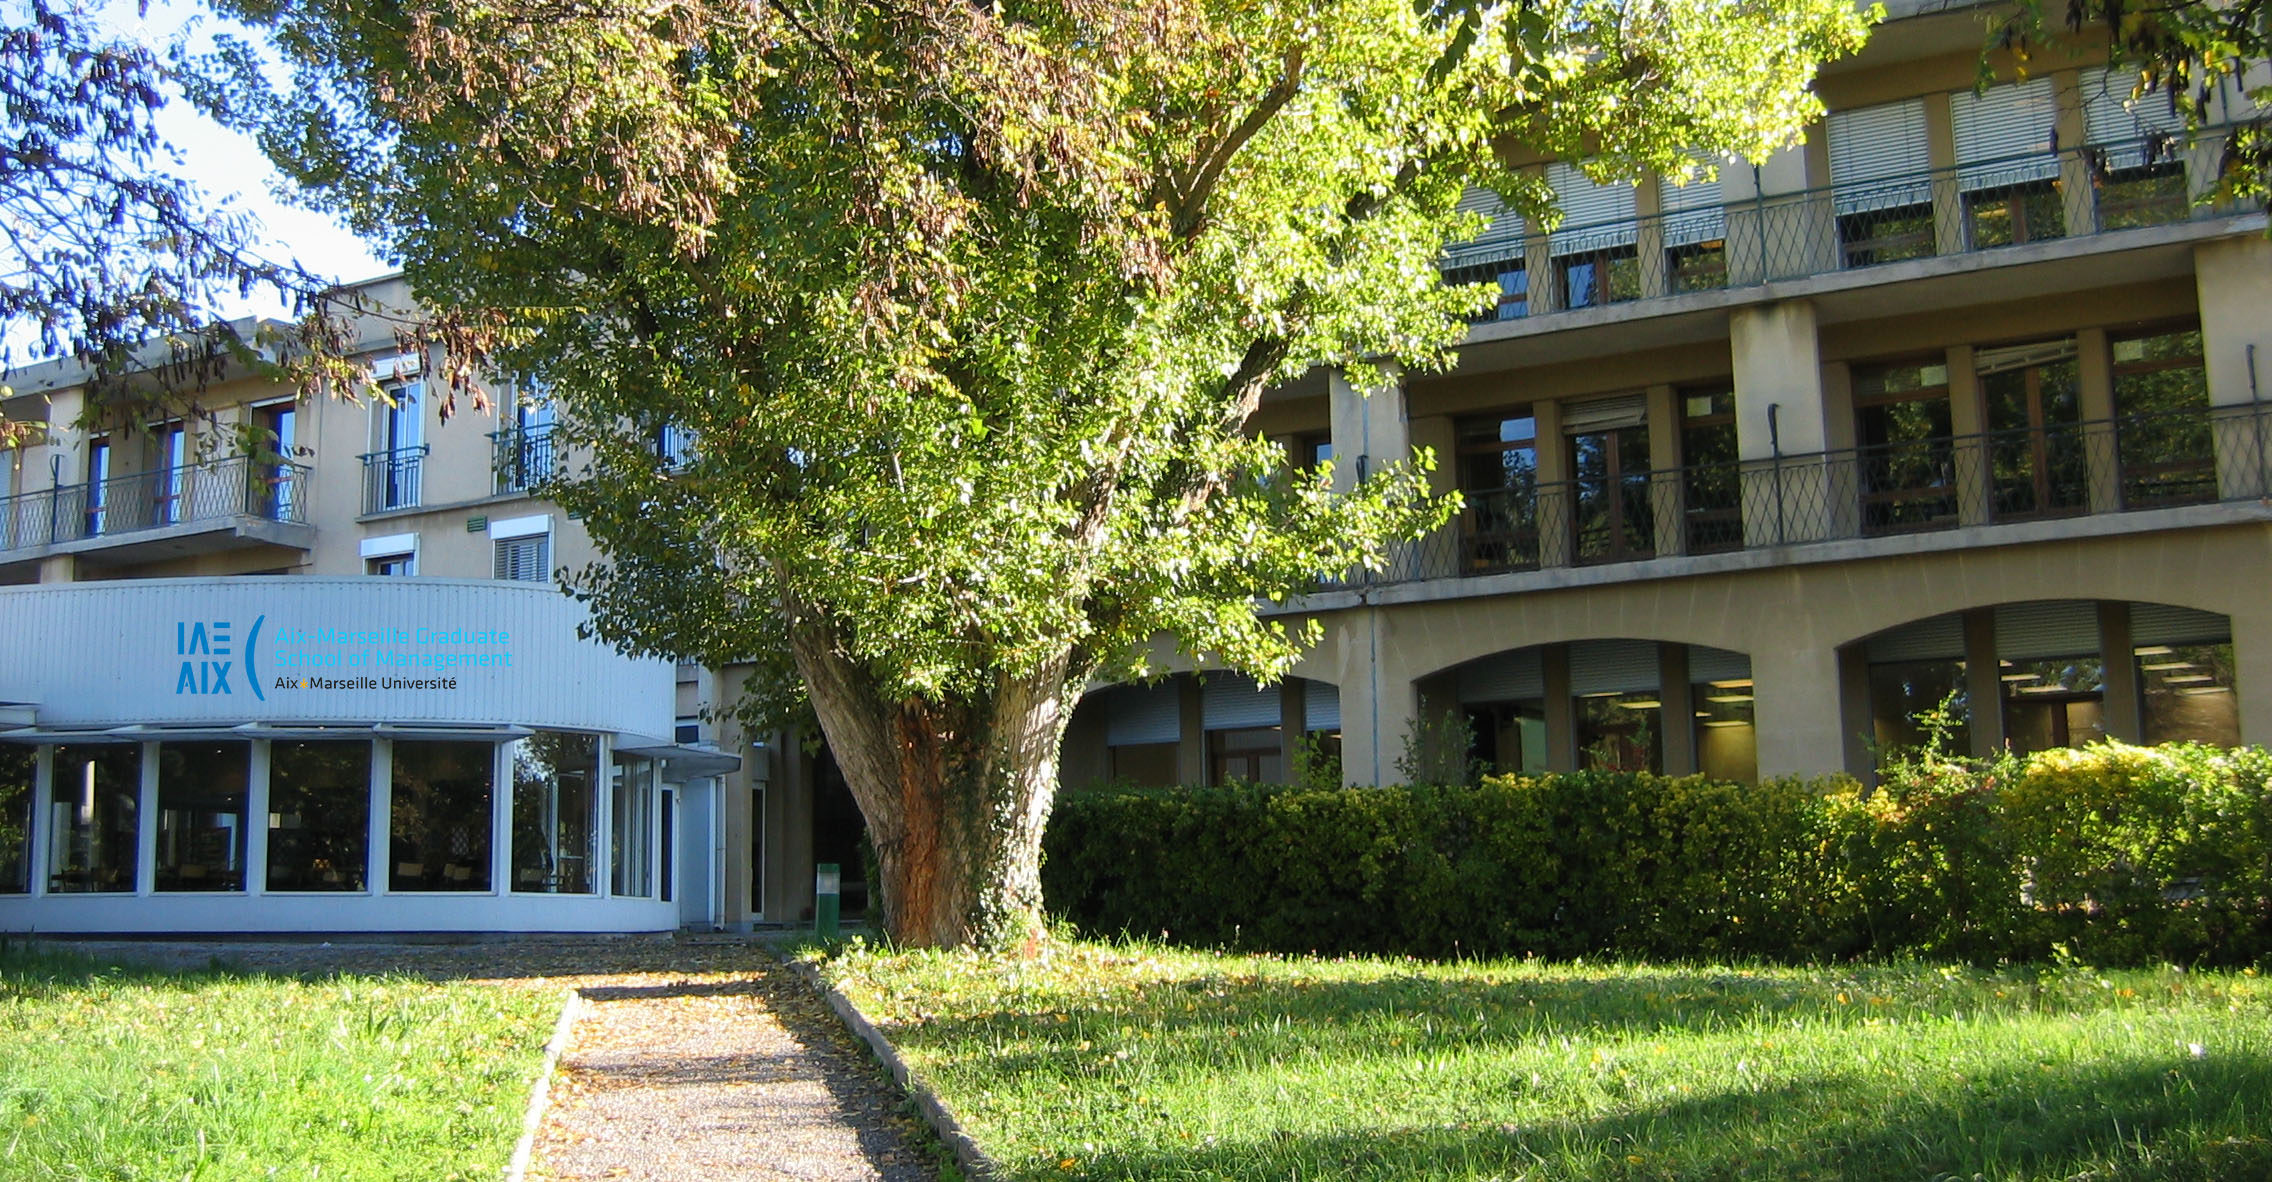 iae aix graduate school of management msc human resources and relationship